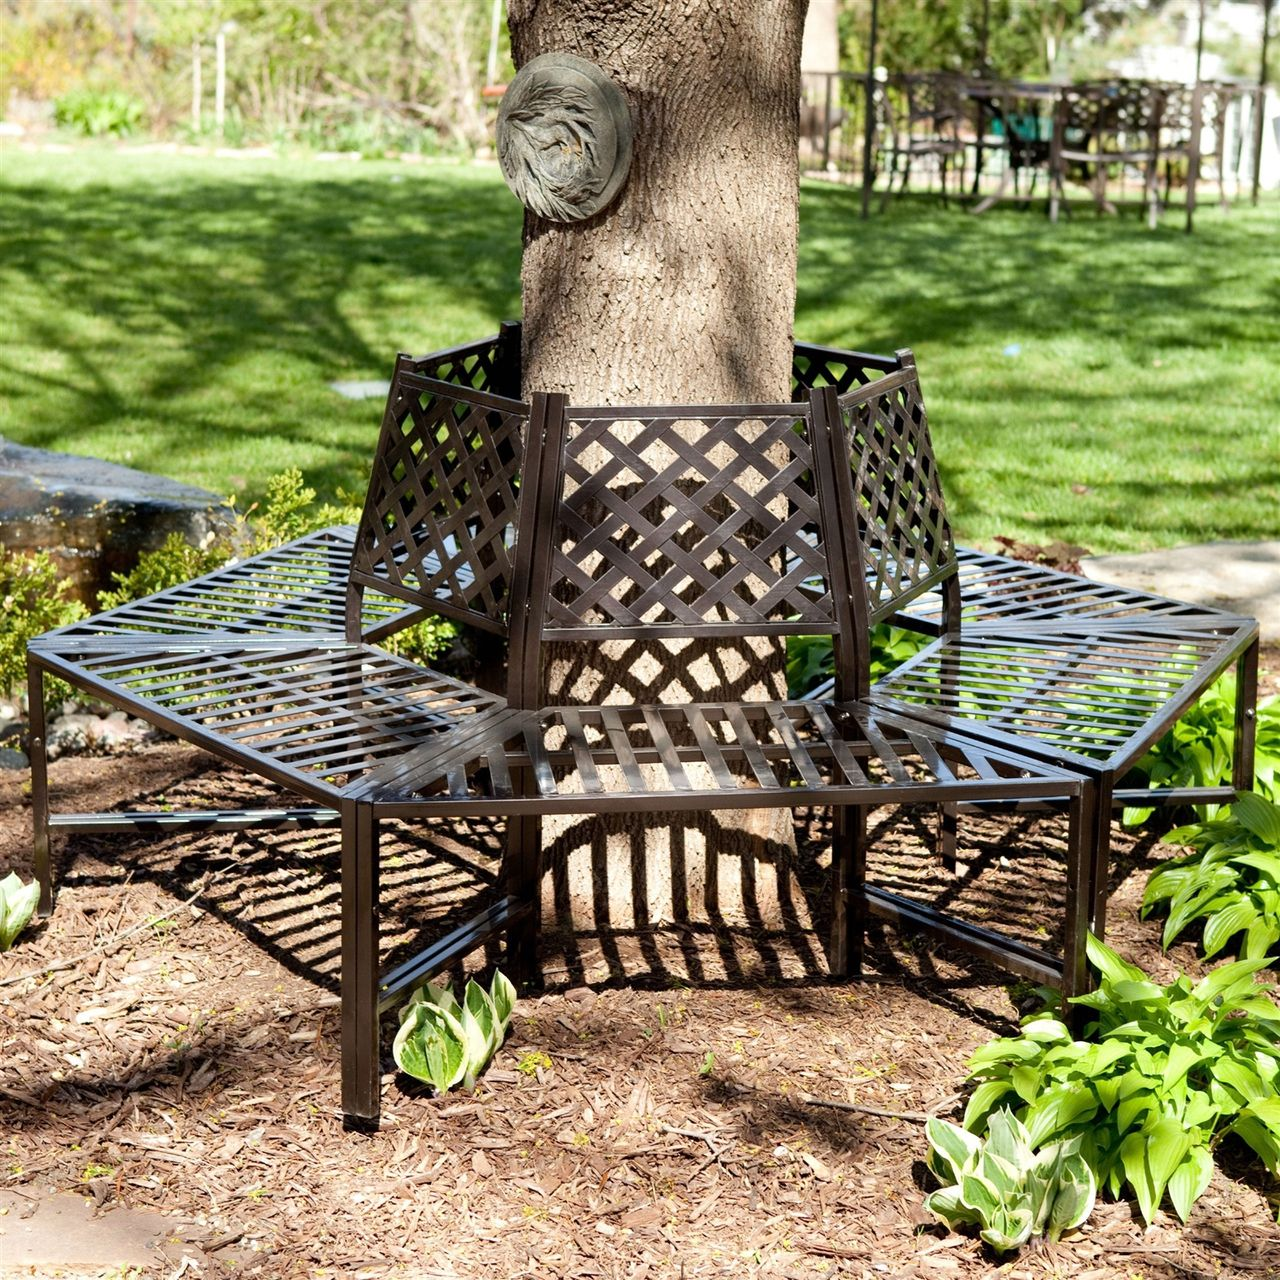 Classic Outdoor 6 Sided Tree Bench In Powder Coasted Steel With